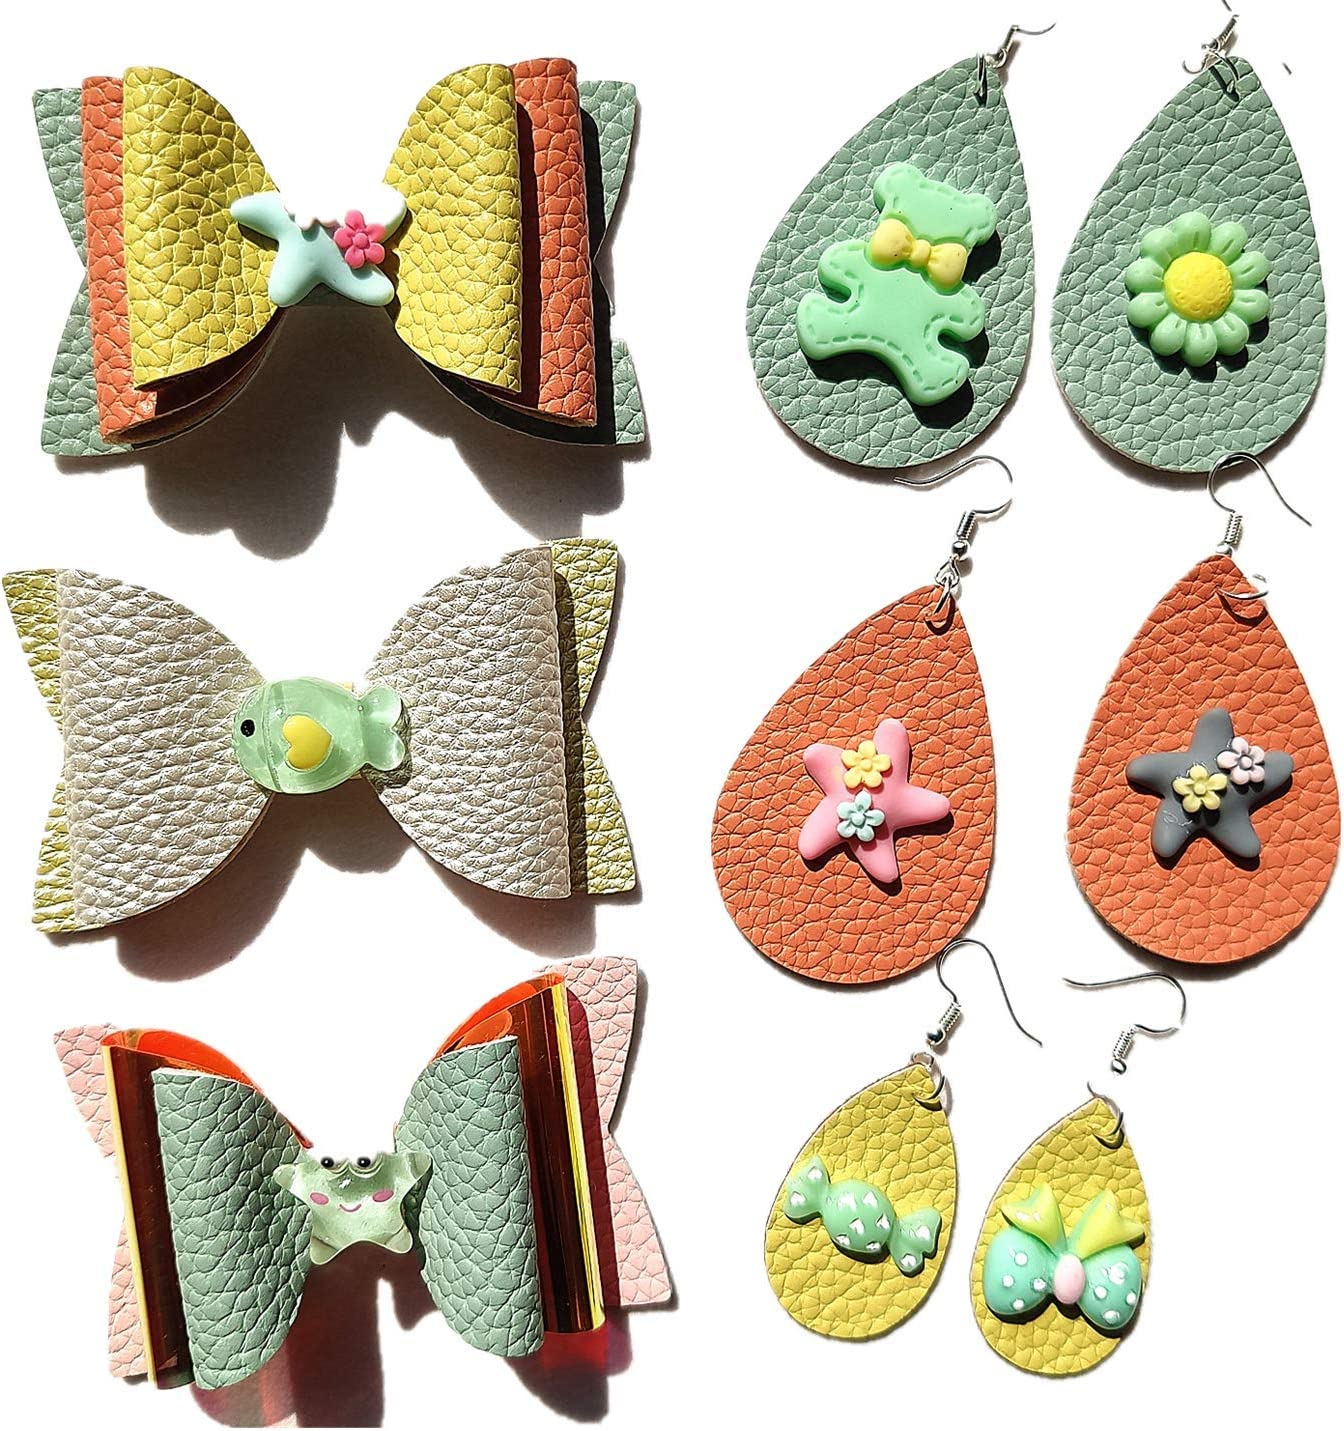 SHUANGART Reusable Bows Earrings Making Template 6.5  x 8.3  Cutting Stencil for DIY Cards Scrapbook Photo Album Bow Ties Random Colors Add 2 pcs A5 Size Faux Leather Sheets for Free